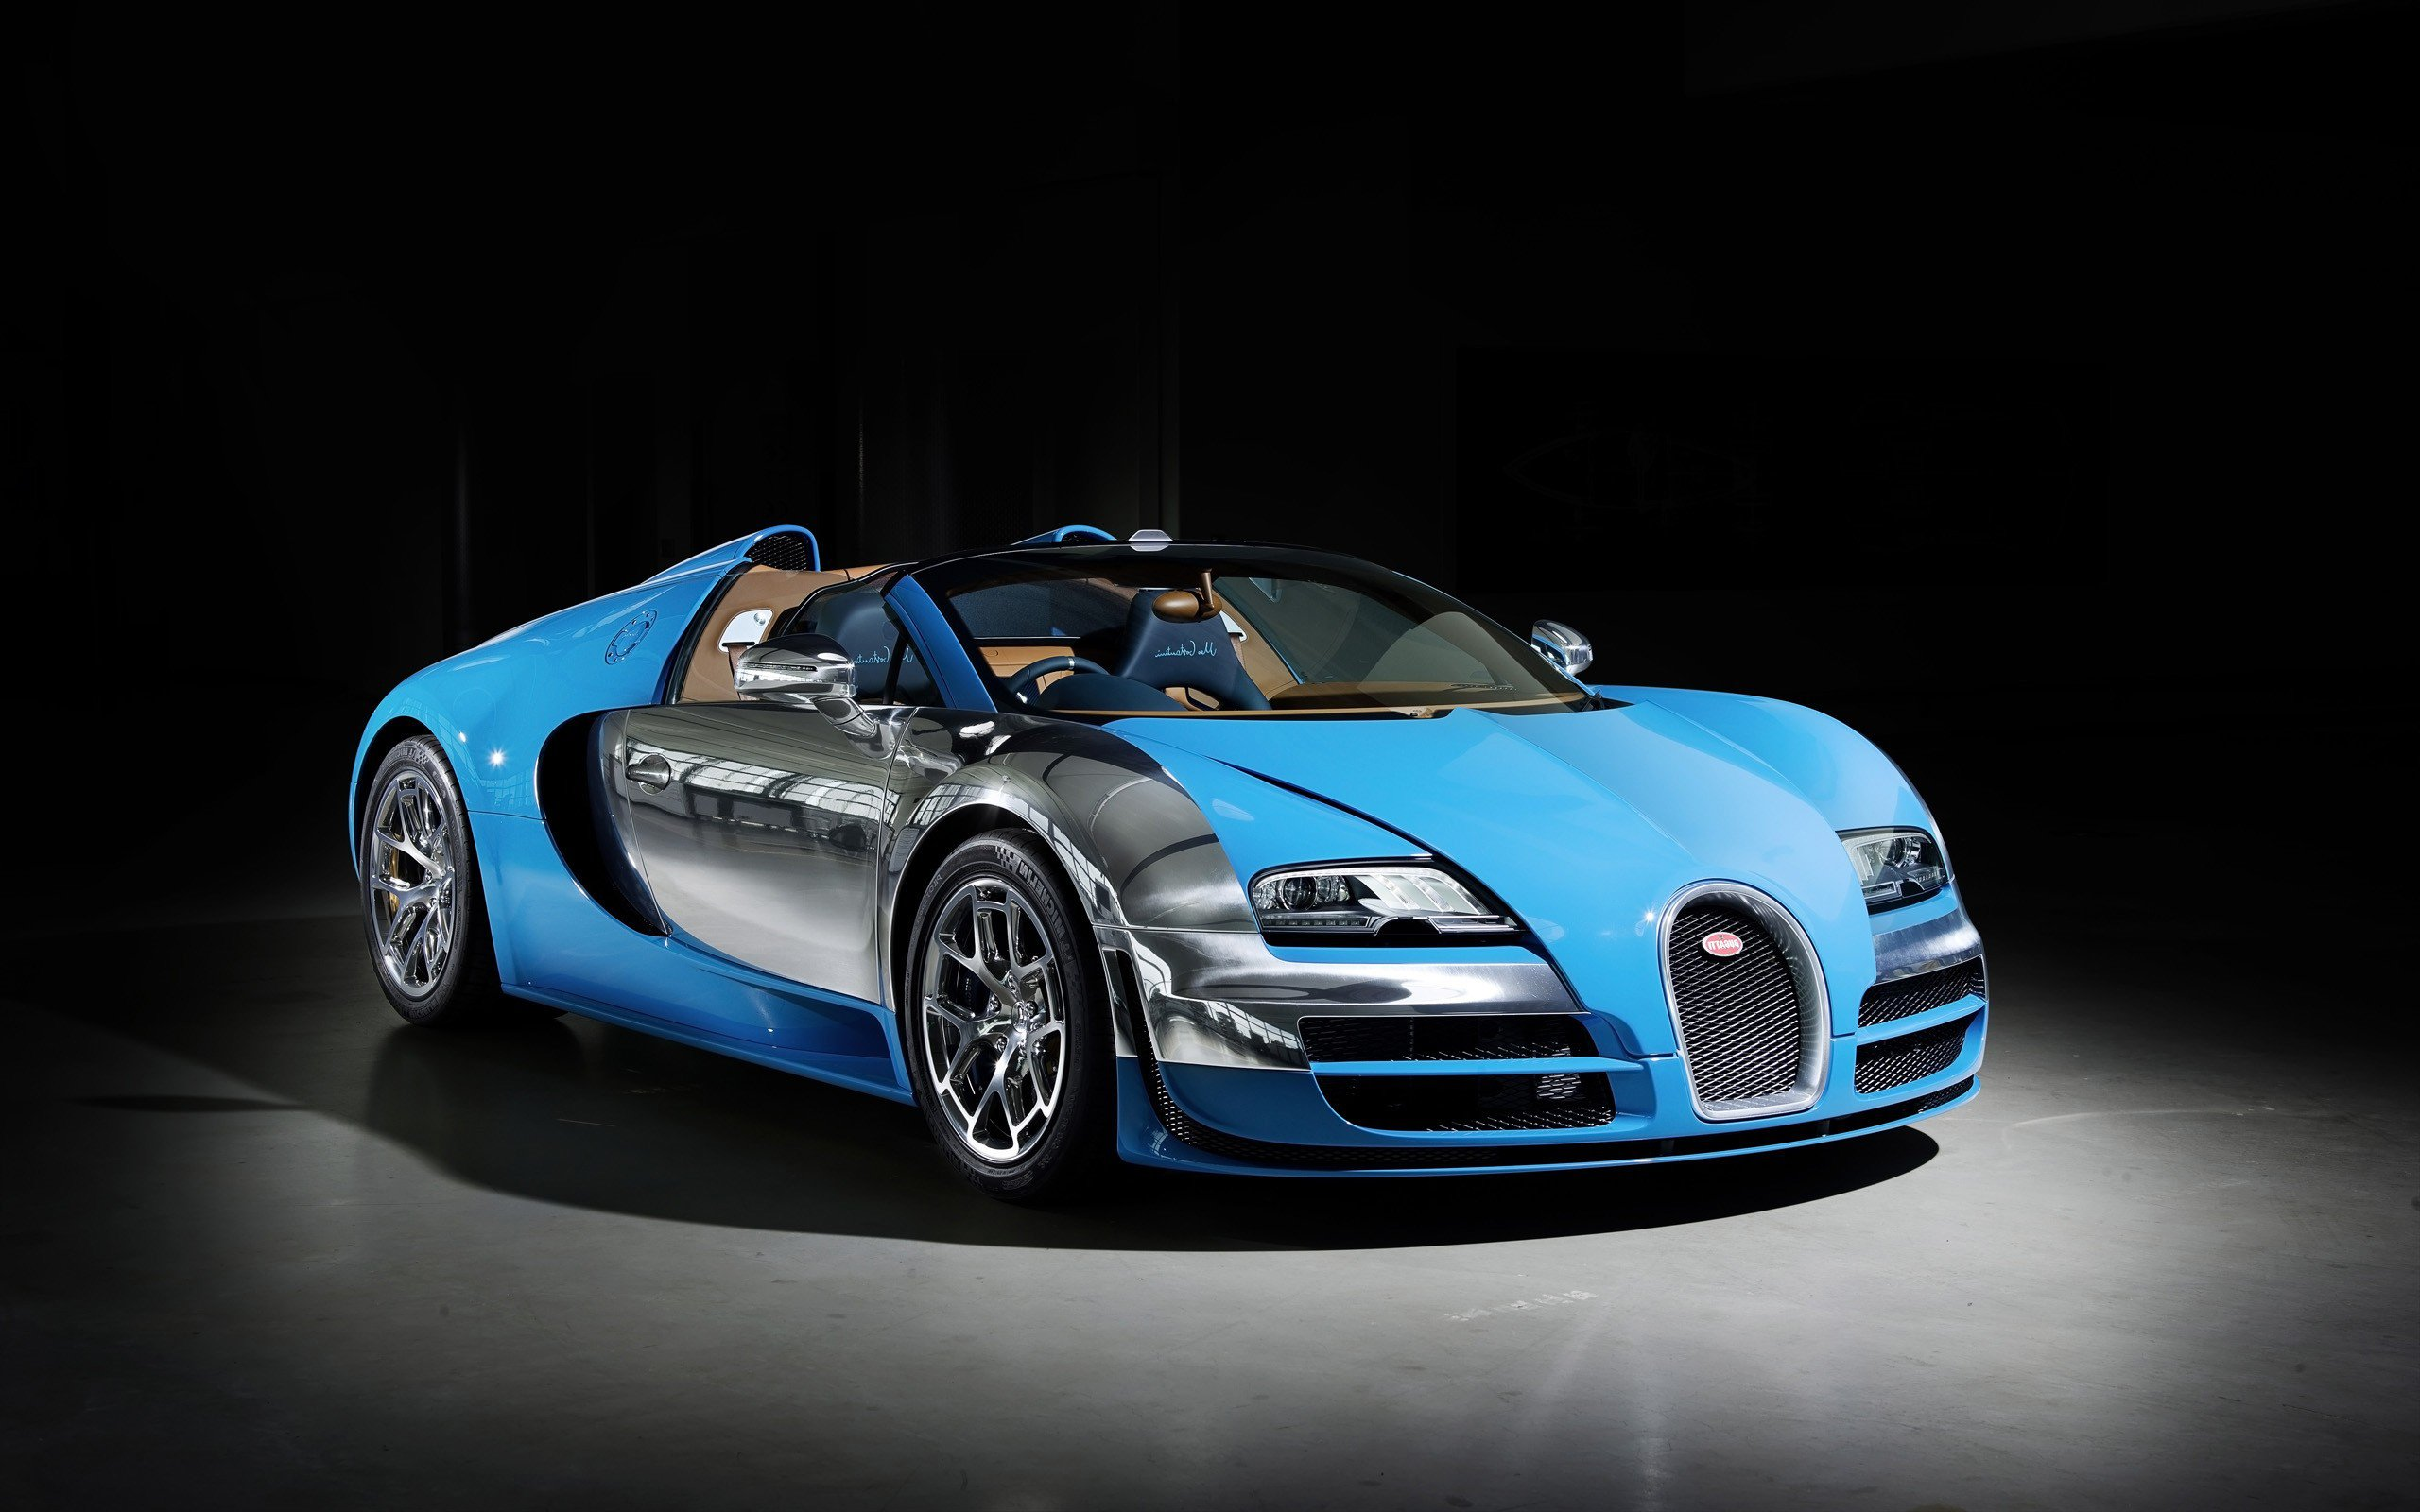 Bugatti Cars Wallpapers 1080p Bugatti Iphone Wallpaper Hd: Bugatti Veyron Grand Sport Vitesse HD, HD Cars, 4k